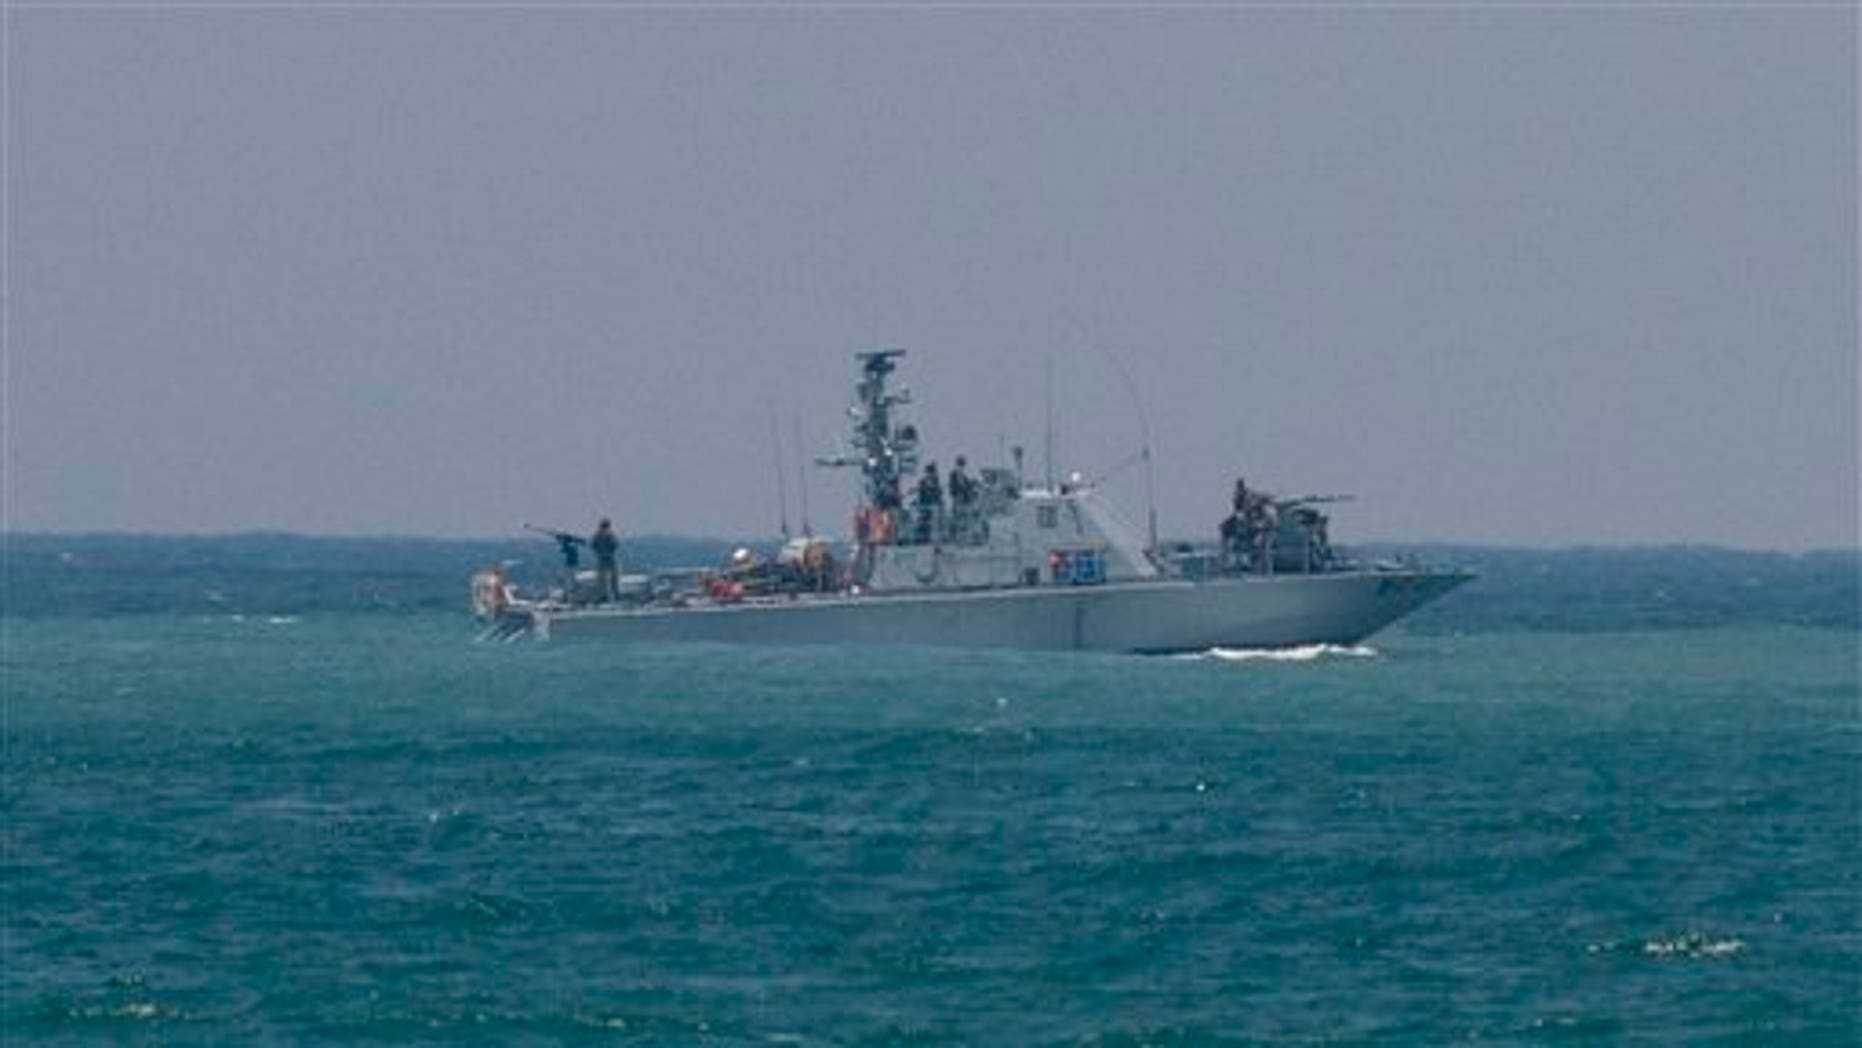 July 19: An Israeli military naval ship sails off the port of Ashdod, Israel,Tuesday. The Israeli military said Tuesday it has made initial contact with a ship attempting to break Israel's blockade of the Gaza Strip and warned the vessel it is approaching an off-limits naval zone.